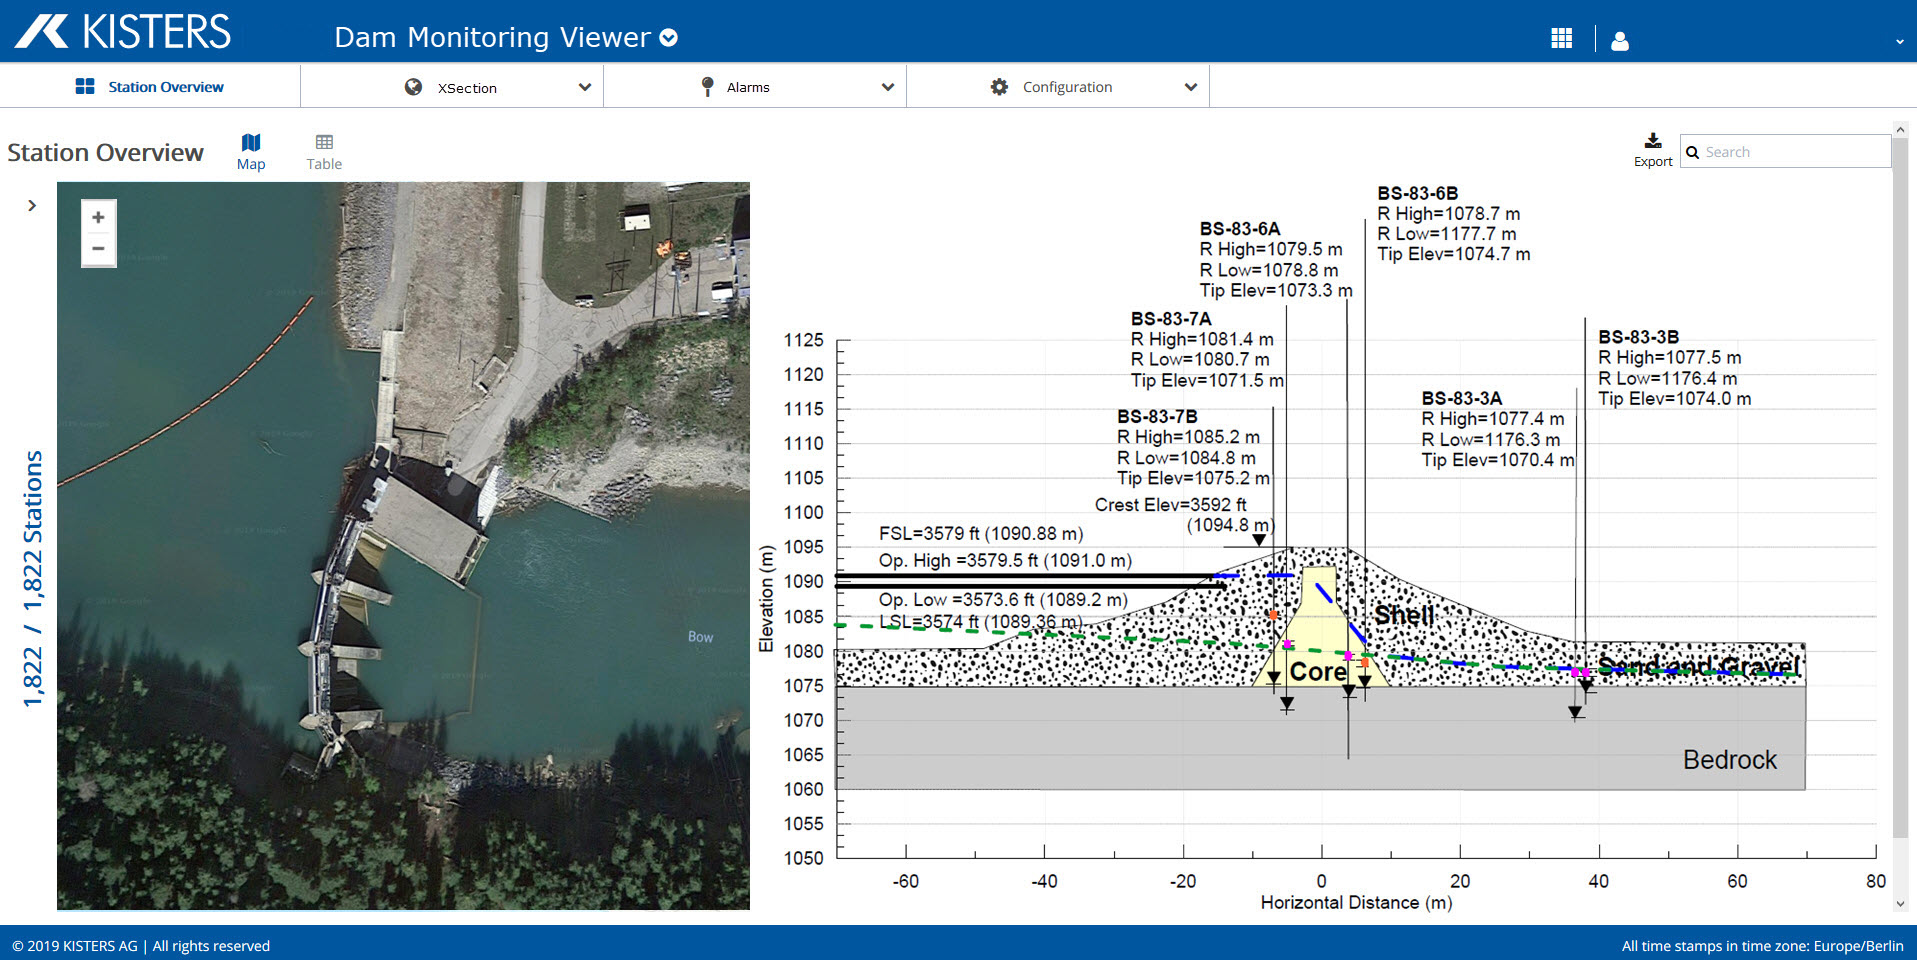 WISKI Dam Safety Web Viewer screen shot displays piezometer monitoring data for dam safety monitoring and compliance reporting